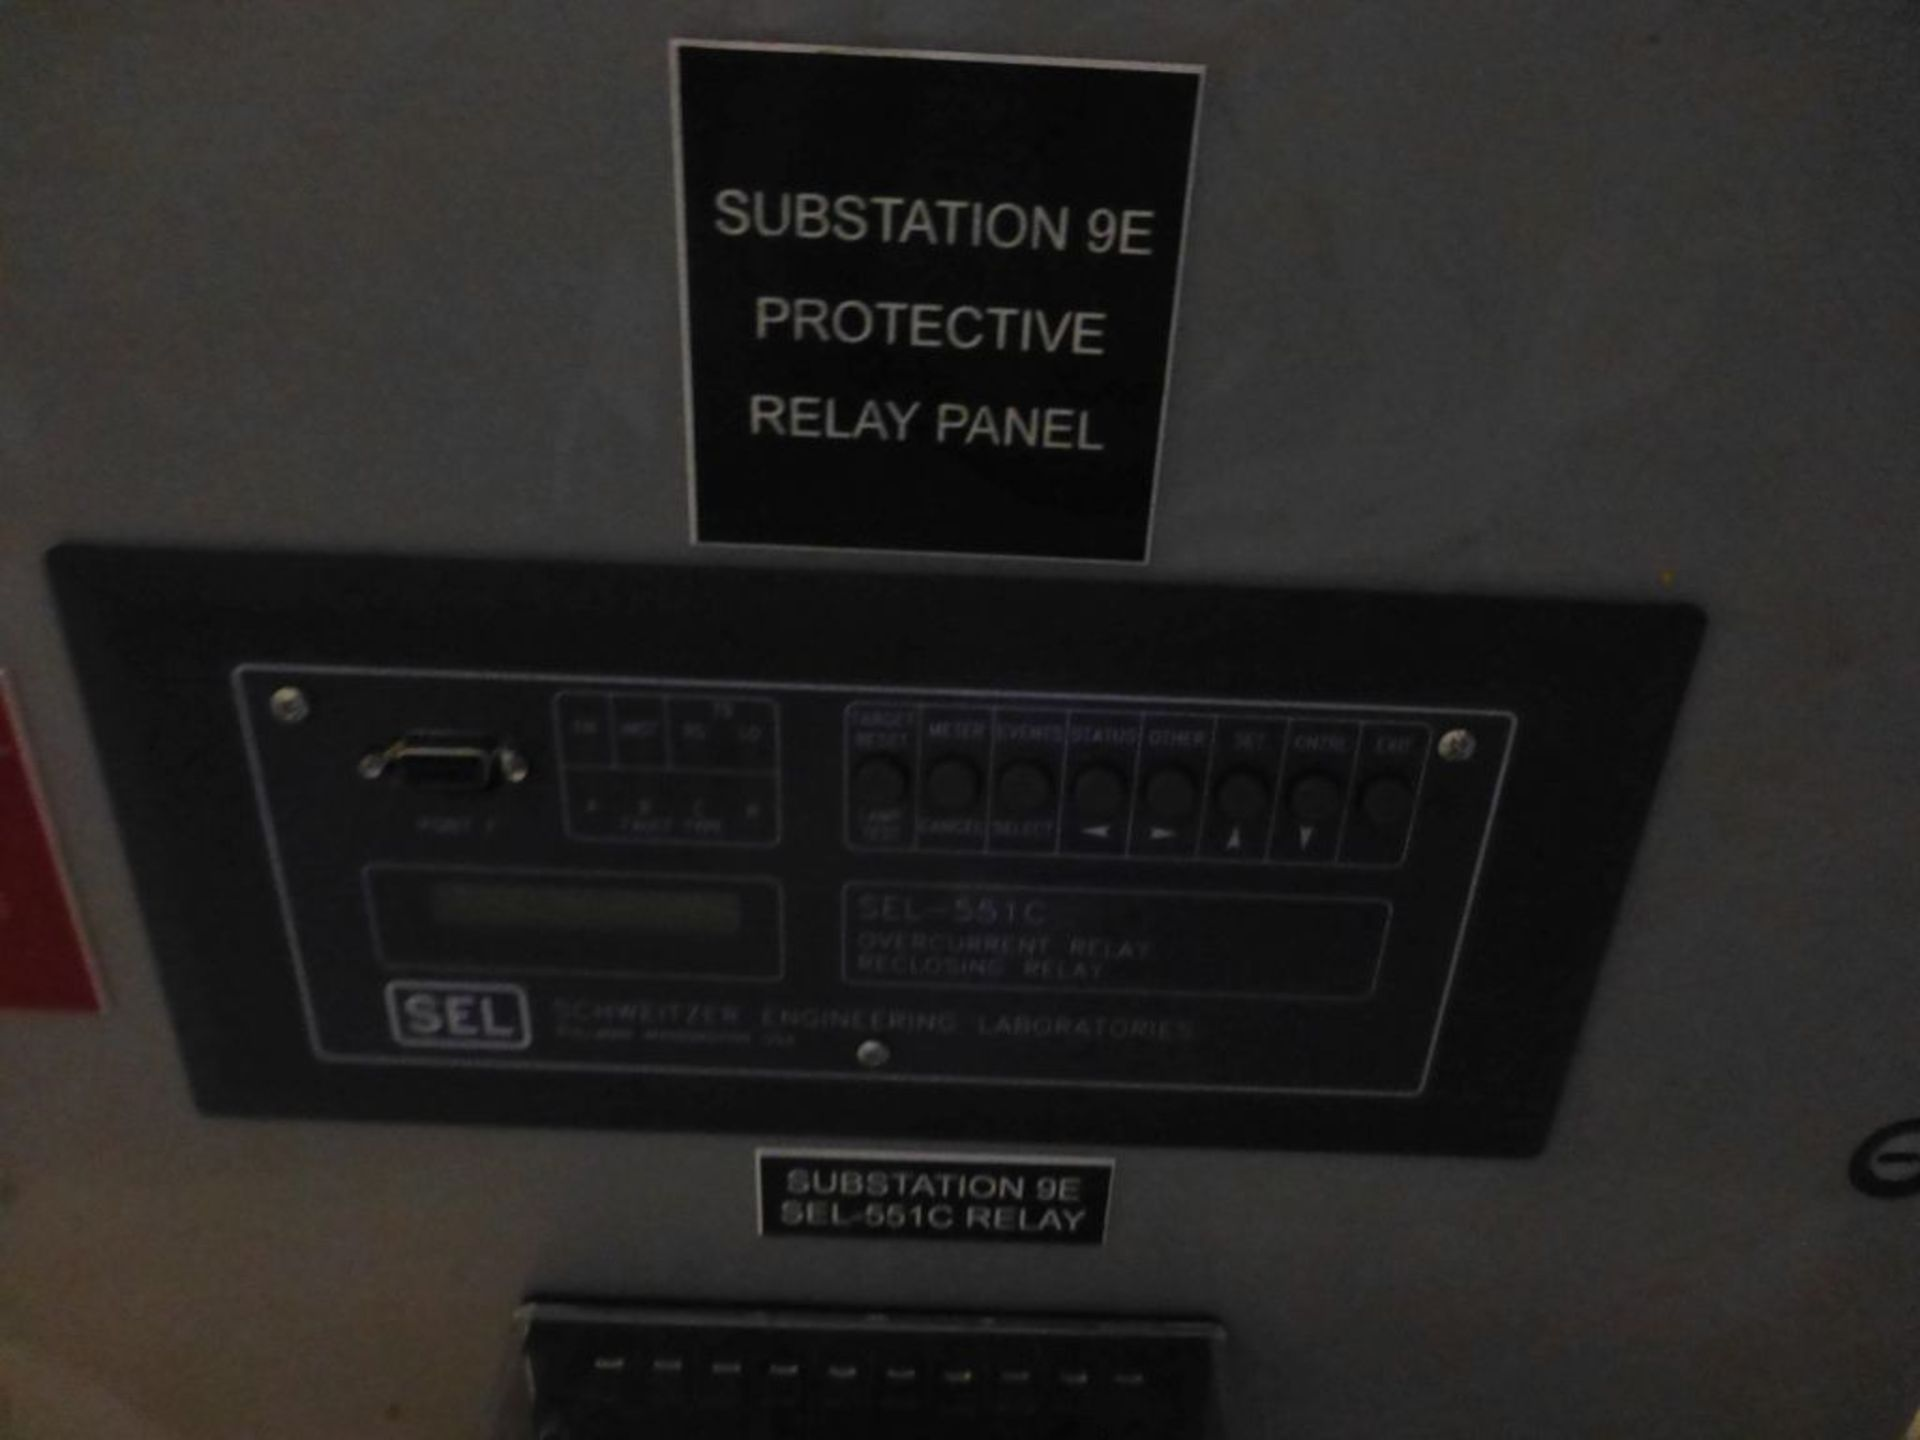 Substation Protective Relay Panel - Image 11 of 14